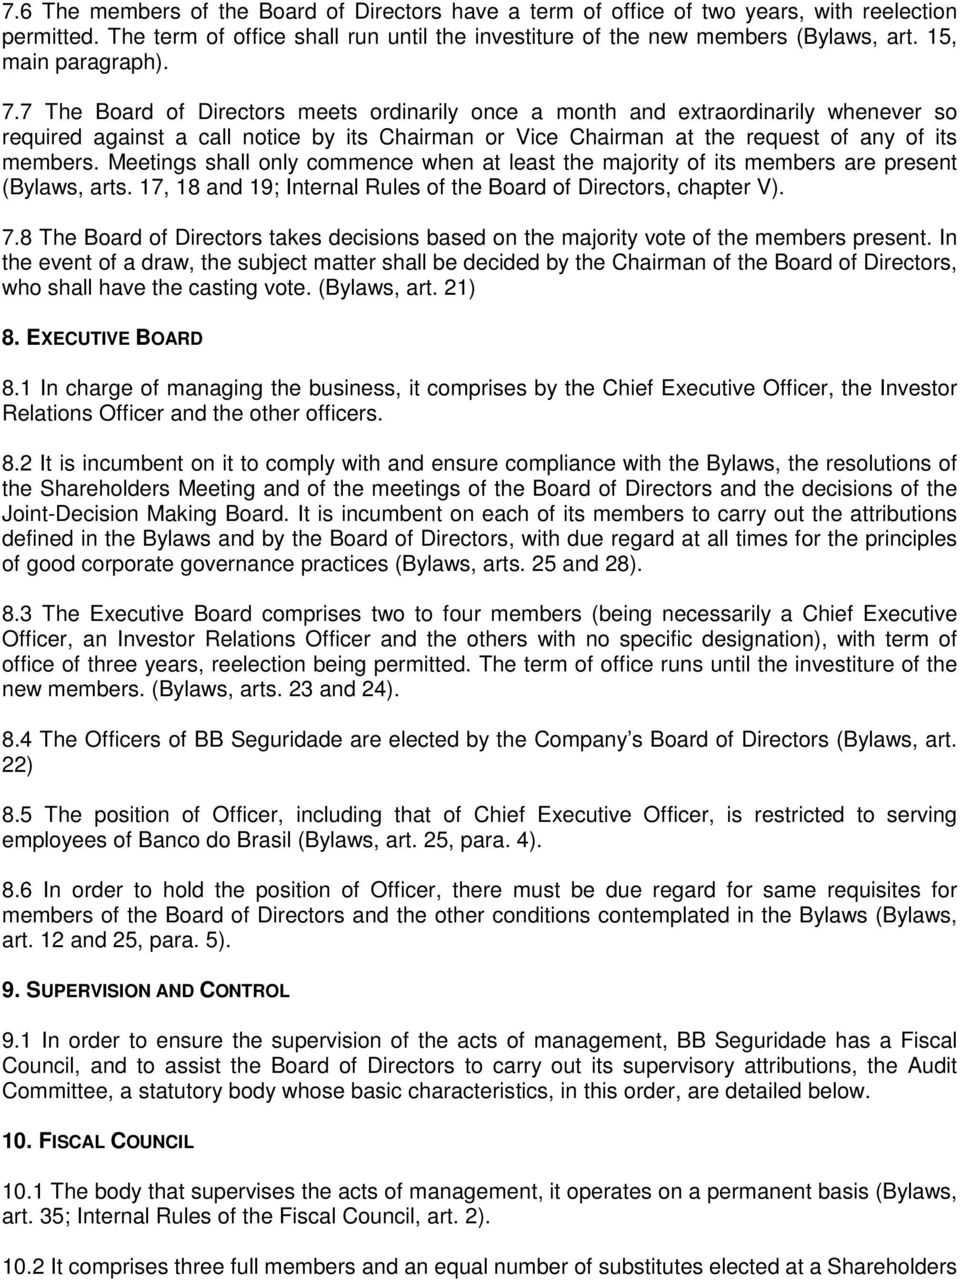 7 The Board of Directors meets ordinarily once a month and extraordinarily whenever so required against a call notice by its Chairman or Vice Chairman at the request of any of its members.